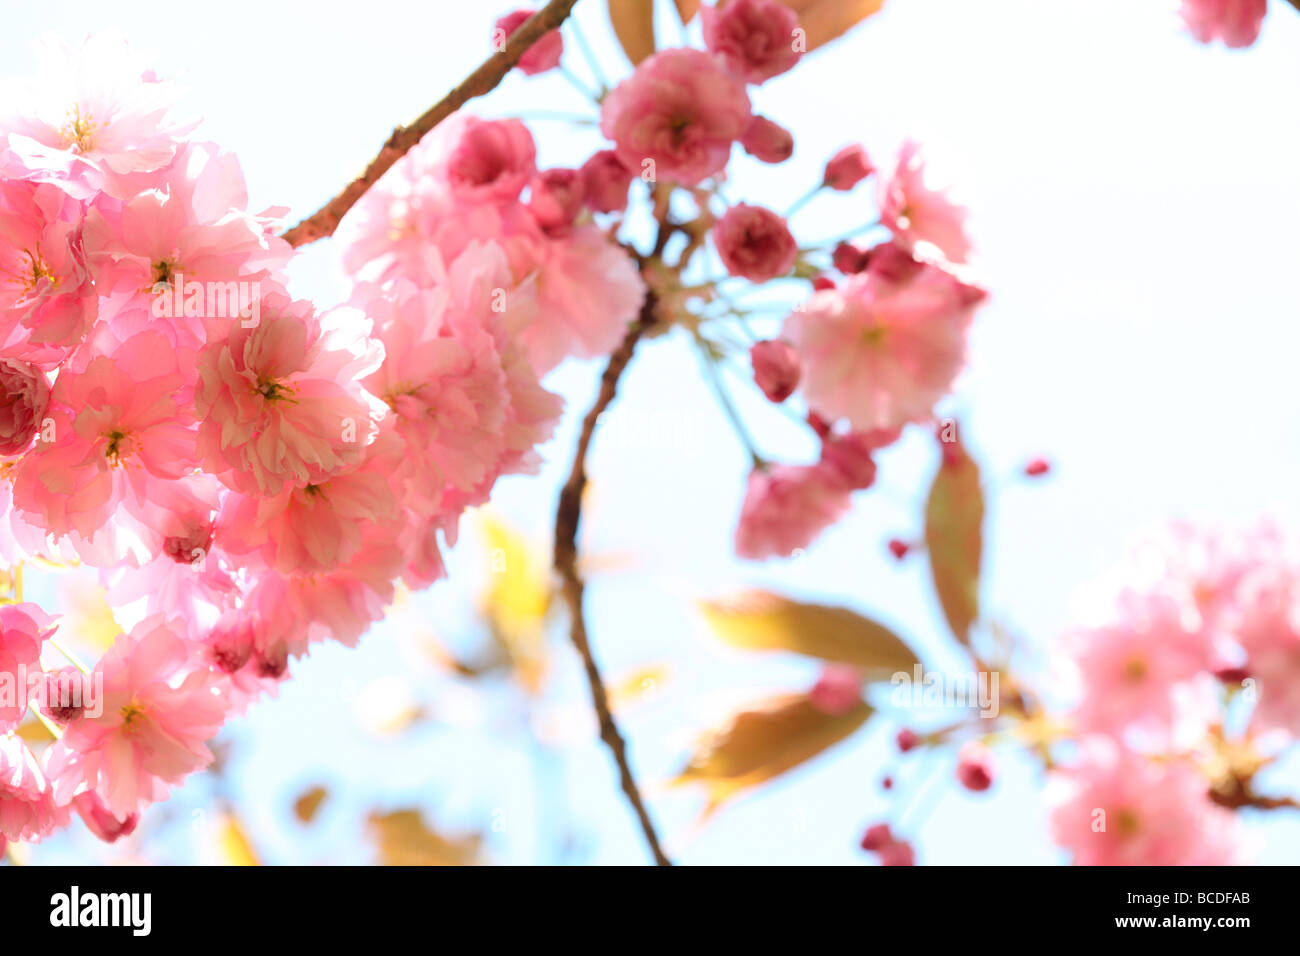 a taste of spring prunus cherry blossom fine art photography Jane Ann Butler Photography JABP456 - Stock Image